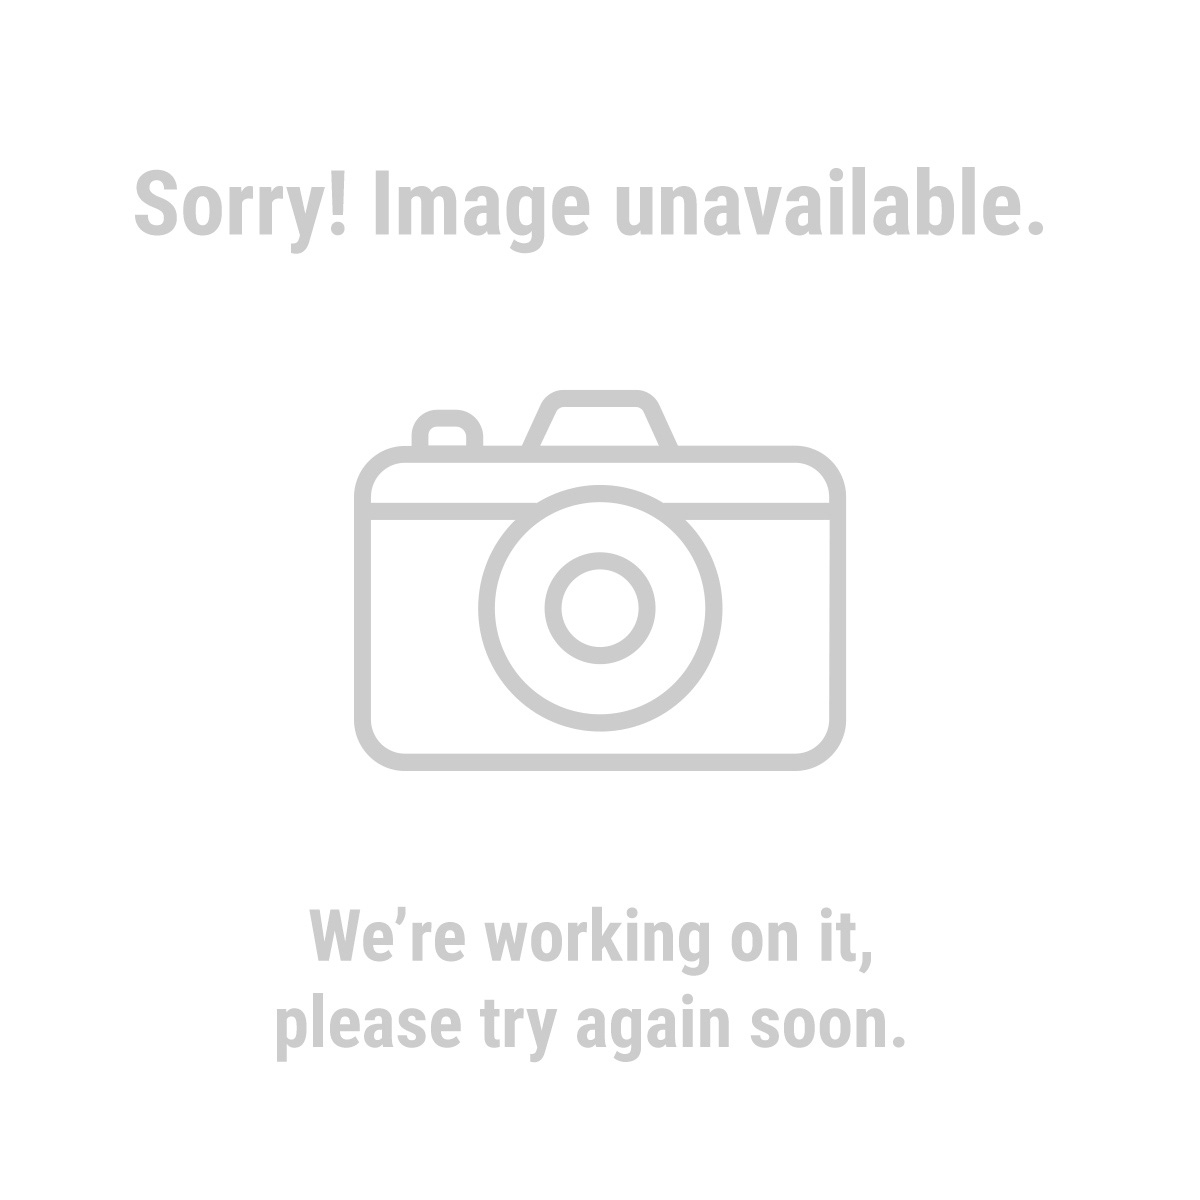 Solar Lights At Harbor Freight: Rate Your Harbor Freight Tool Experiences!